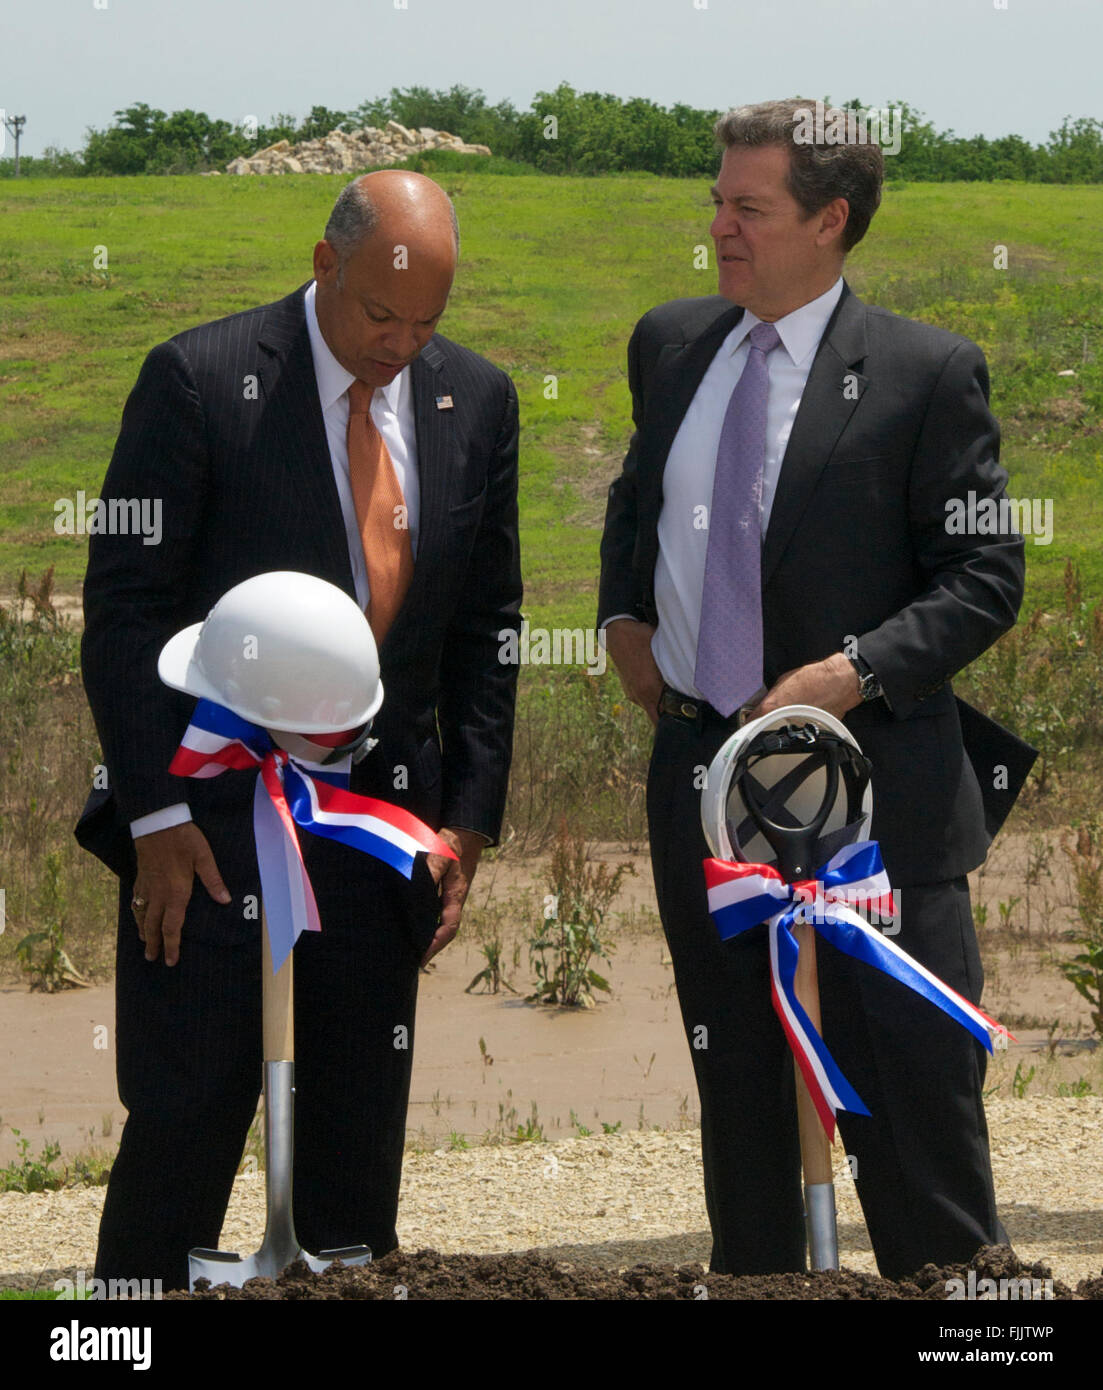 Manhattan, Kansas, USA, 27th May, 2015 L-R ) Secretary of Department of Homeland Security Jeh Jonson and Kansas Governor Sam Brownback (R) talk with one another after the official groundbreaking ceremony of the new biocontainment facility on the grounds of Kansas State University in Manhattan today.  Credit: Mark Reinstein Stock Photo